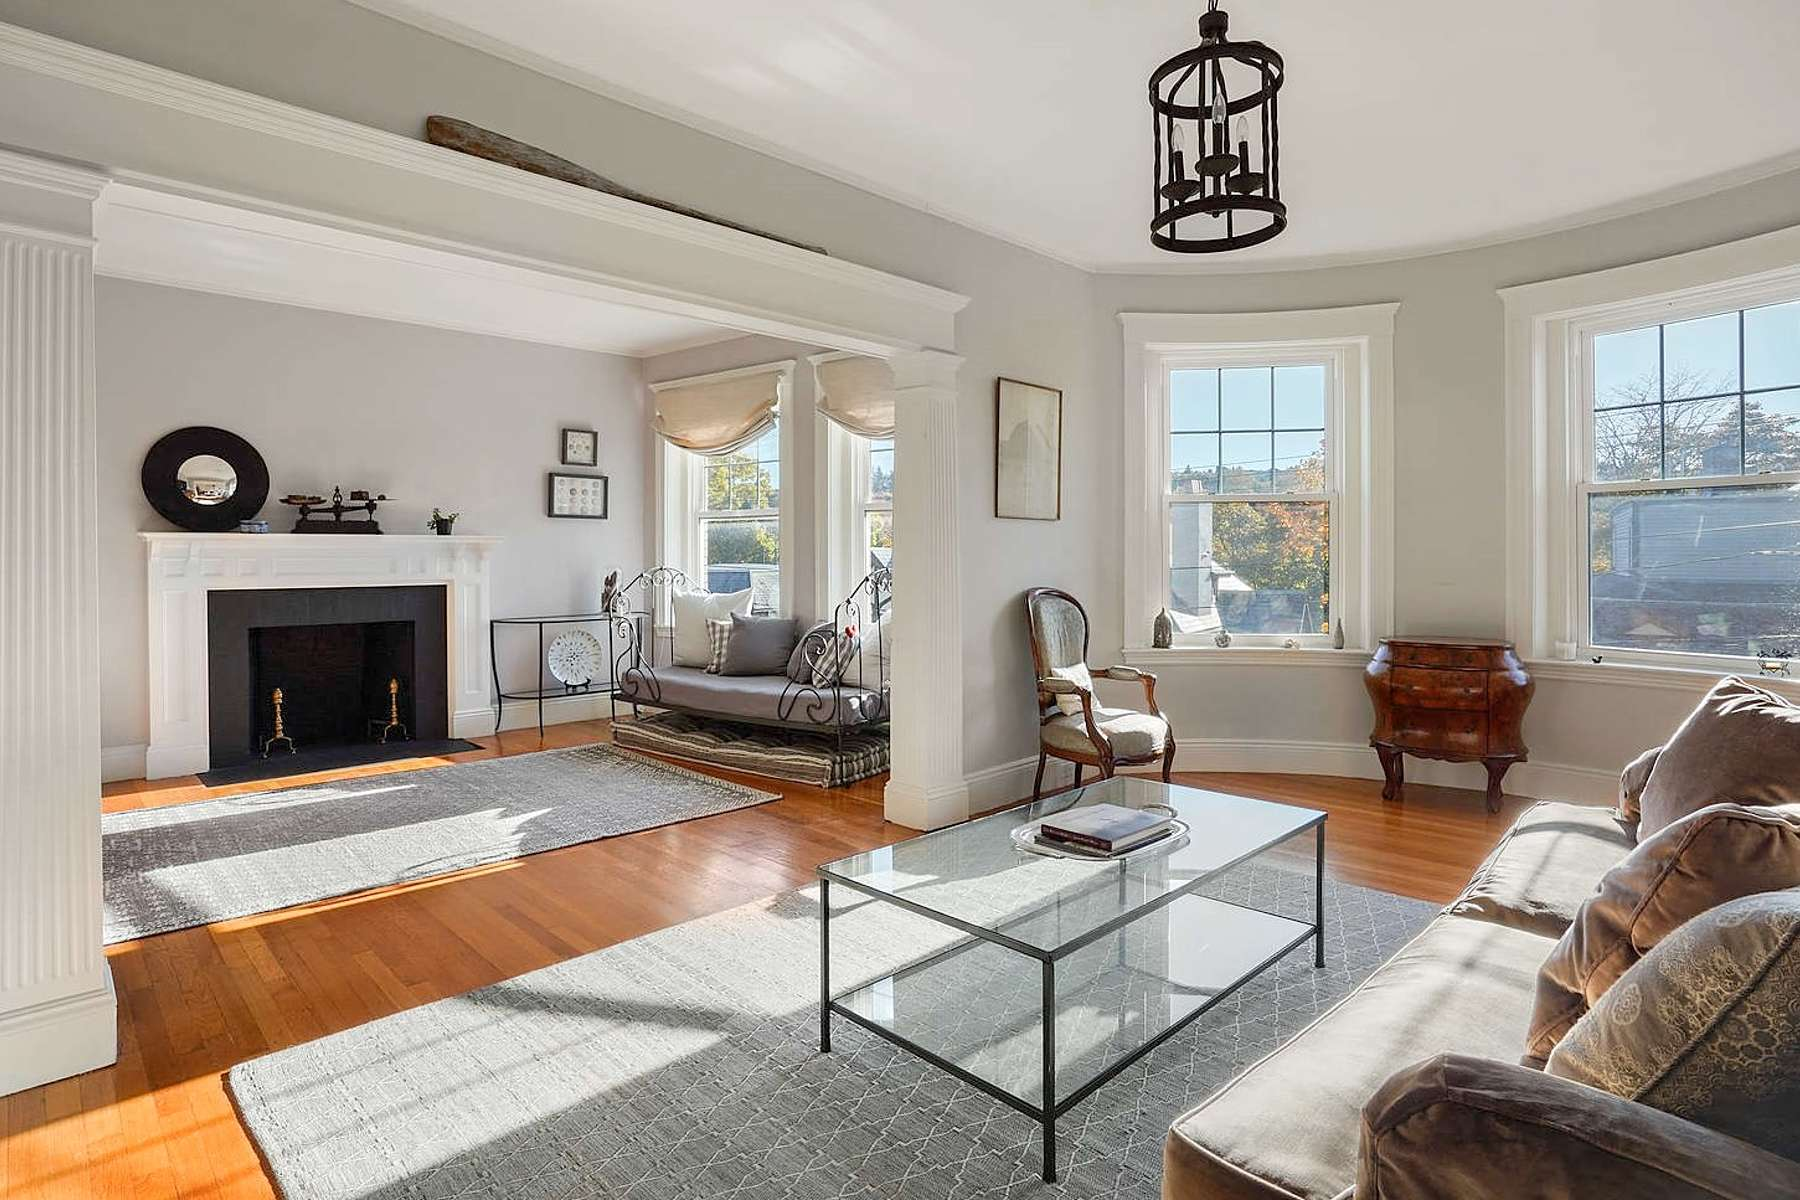 Condominiums for Sale at 281 Tappan St - Unit 2 281 Tappan St 2 Brookline, Massachusetts 02445 United States